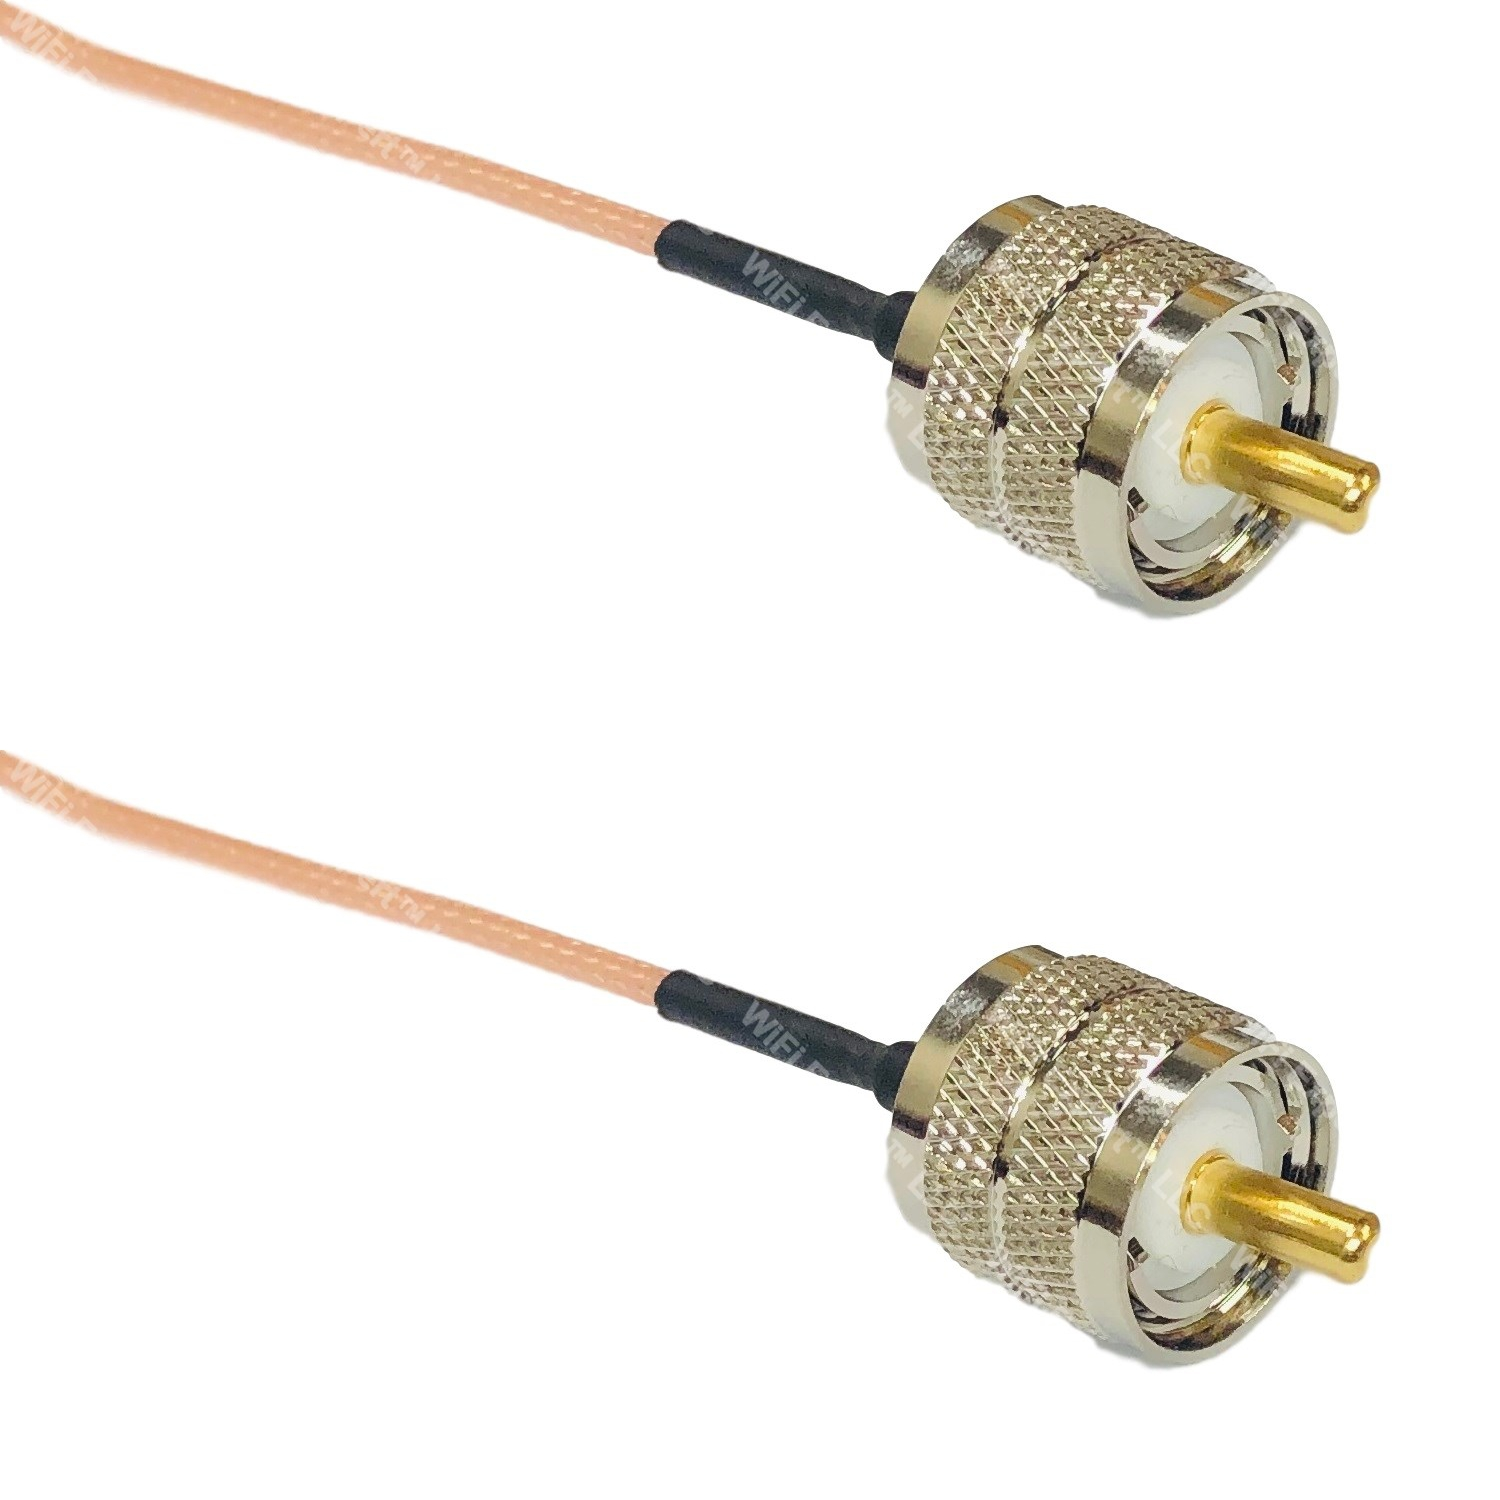 USA-CA LMR195 PL259 UHF MALE to BNC MALE Coaxial RF Pigtail Cable